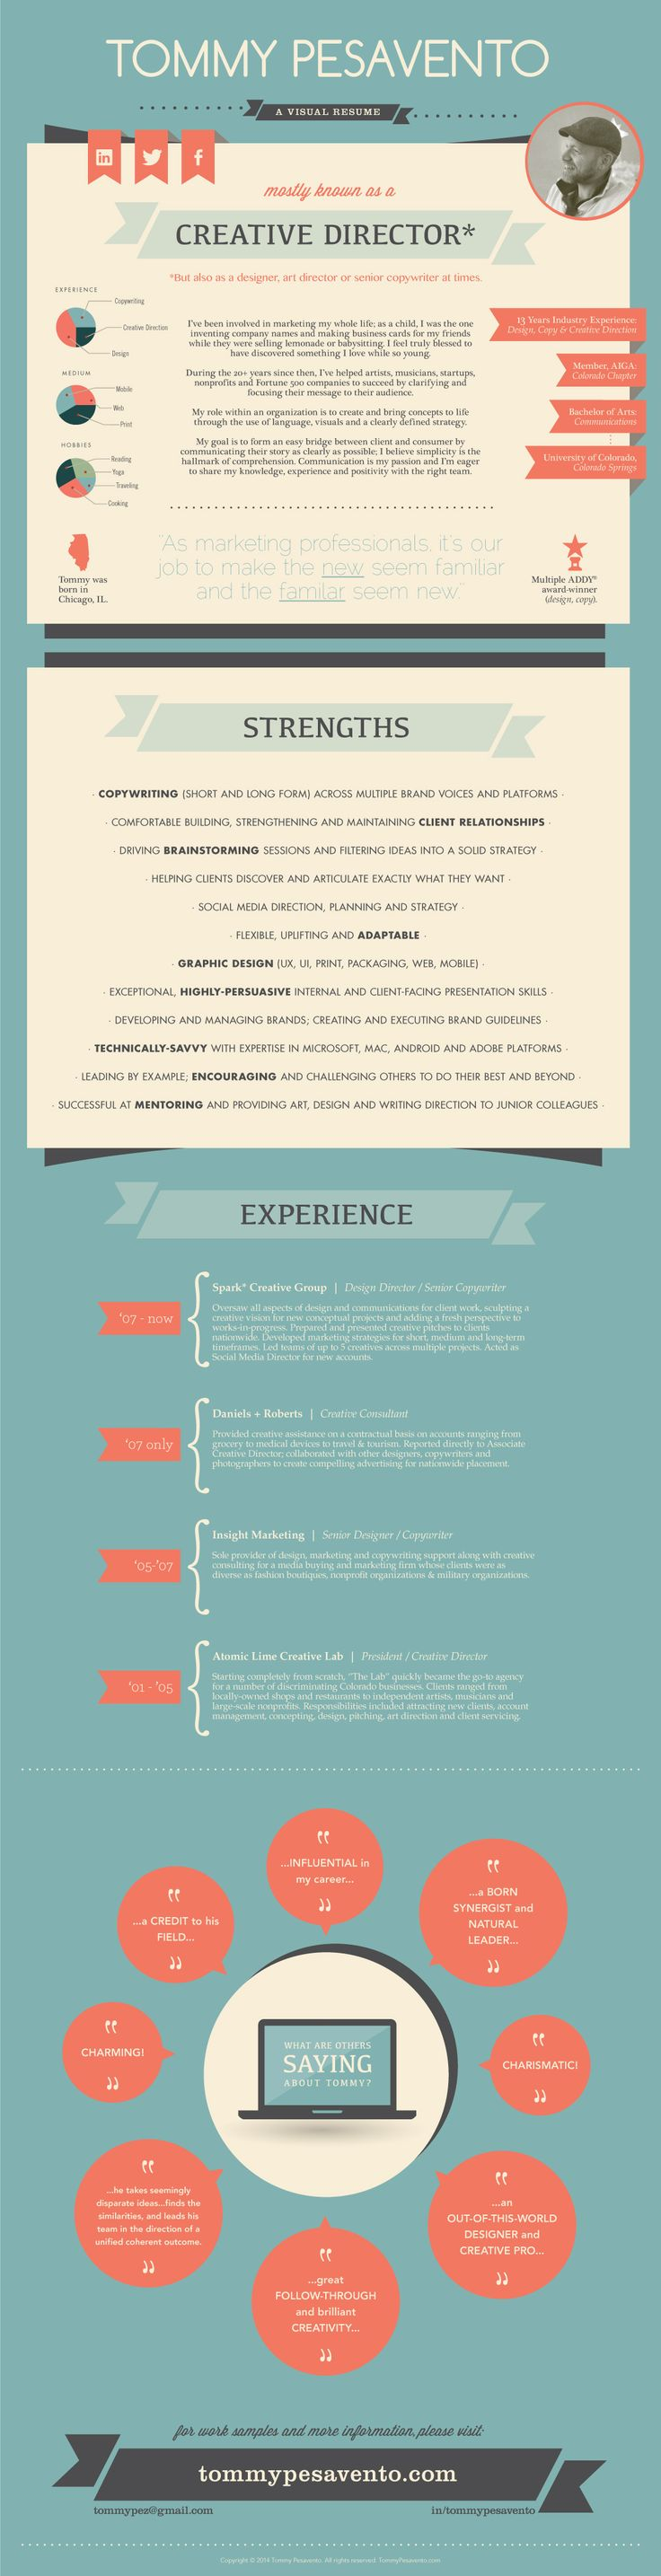 Infographic: My Visual Resume - tommy pesavento